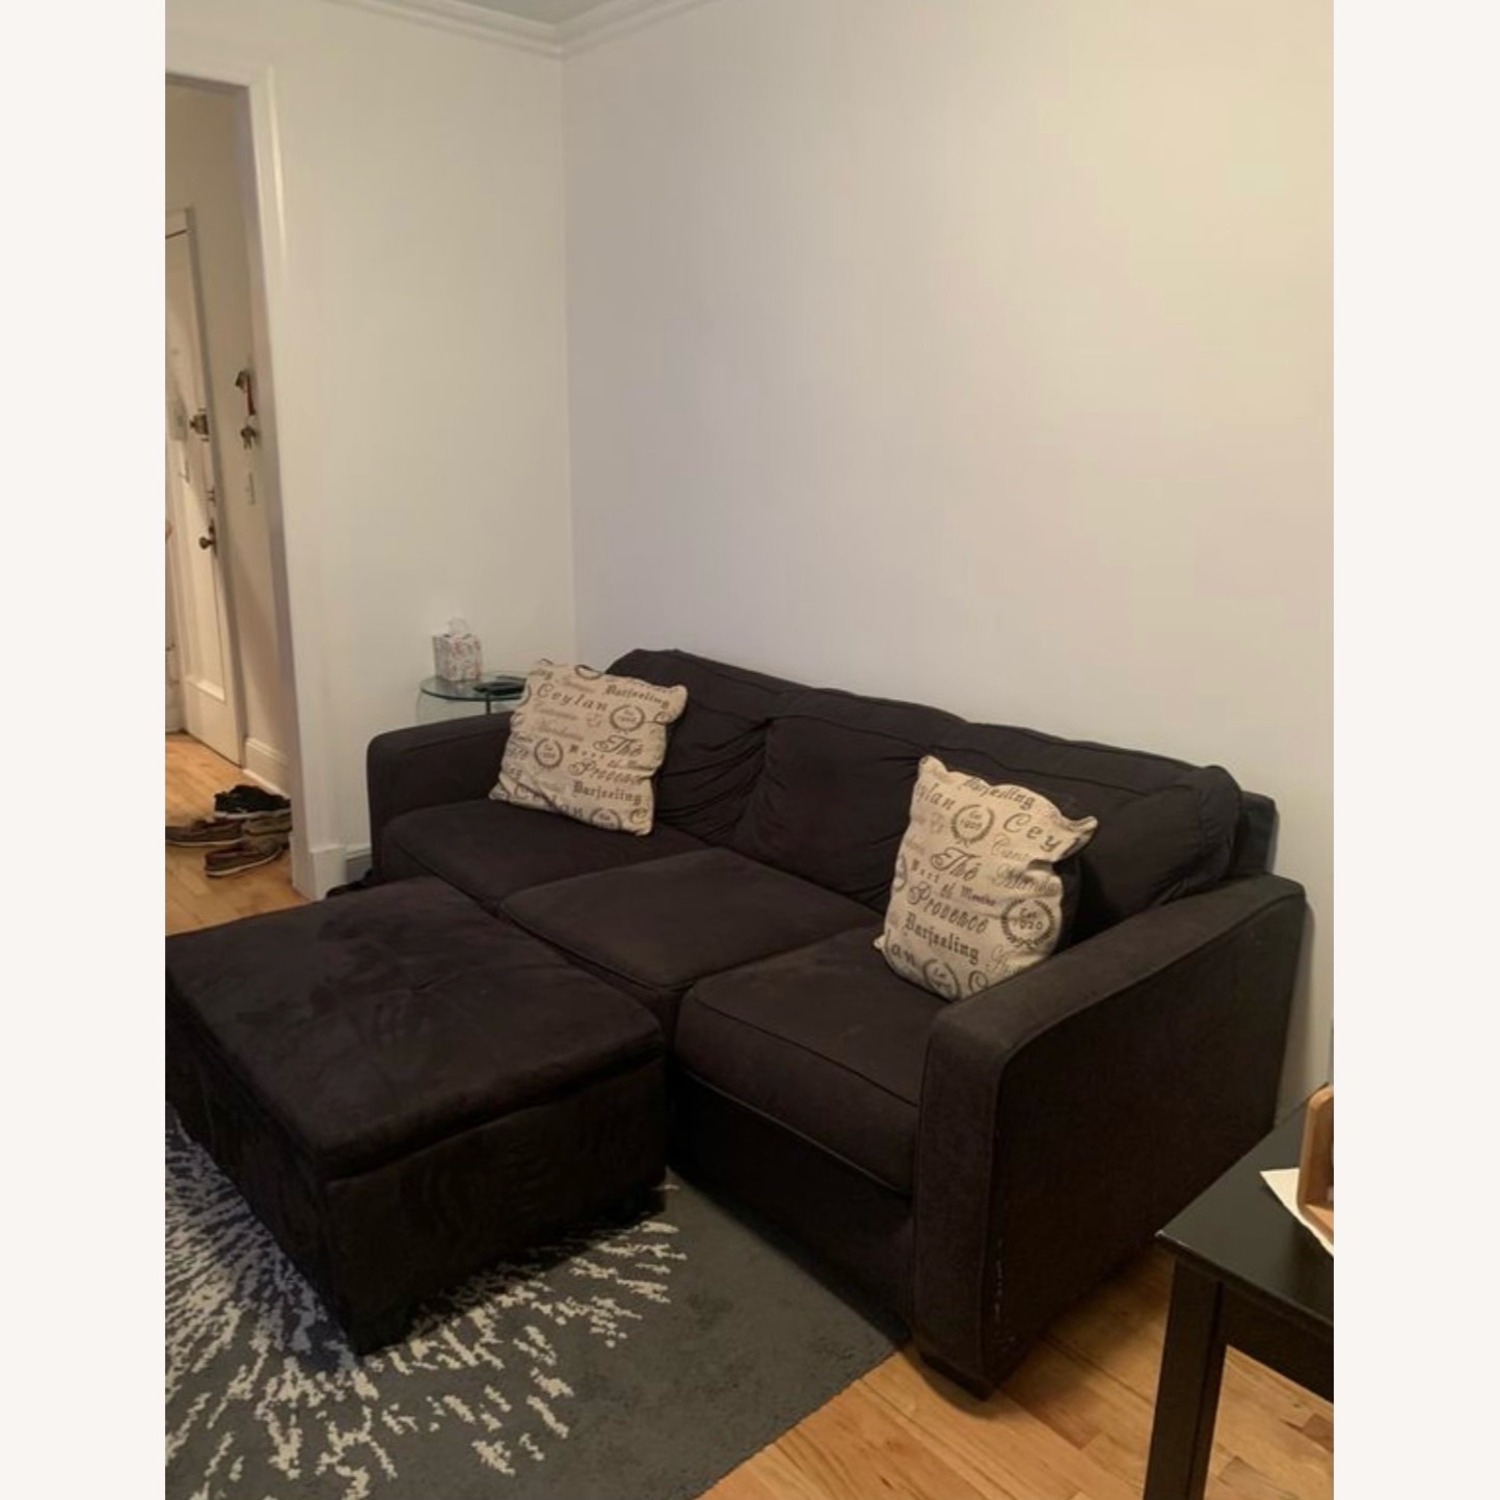 3 Seater Couch Black With Ottoman and 2 Pillows - image-2